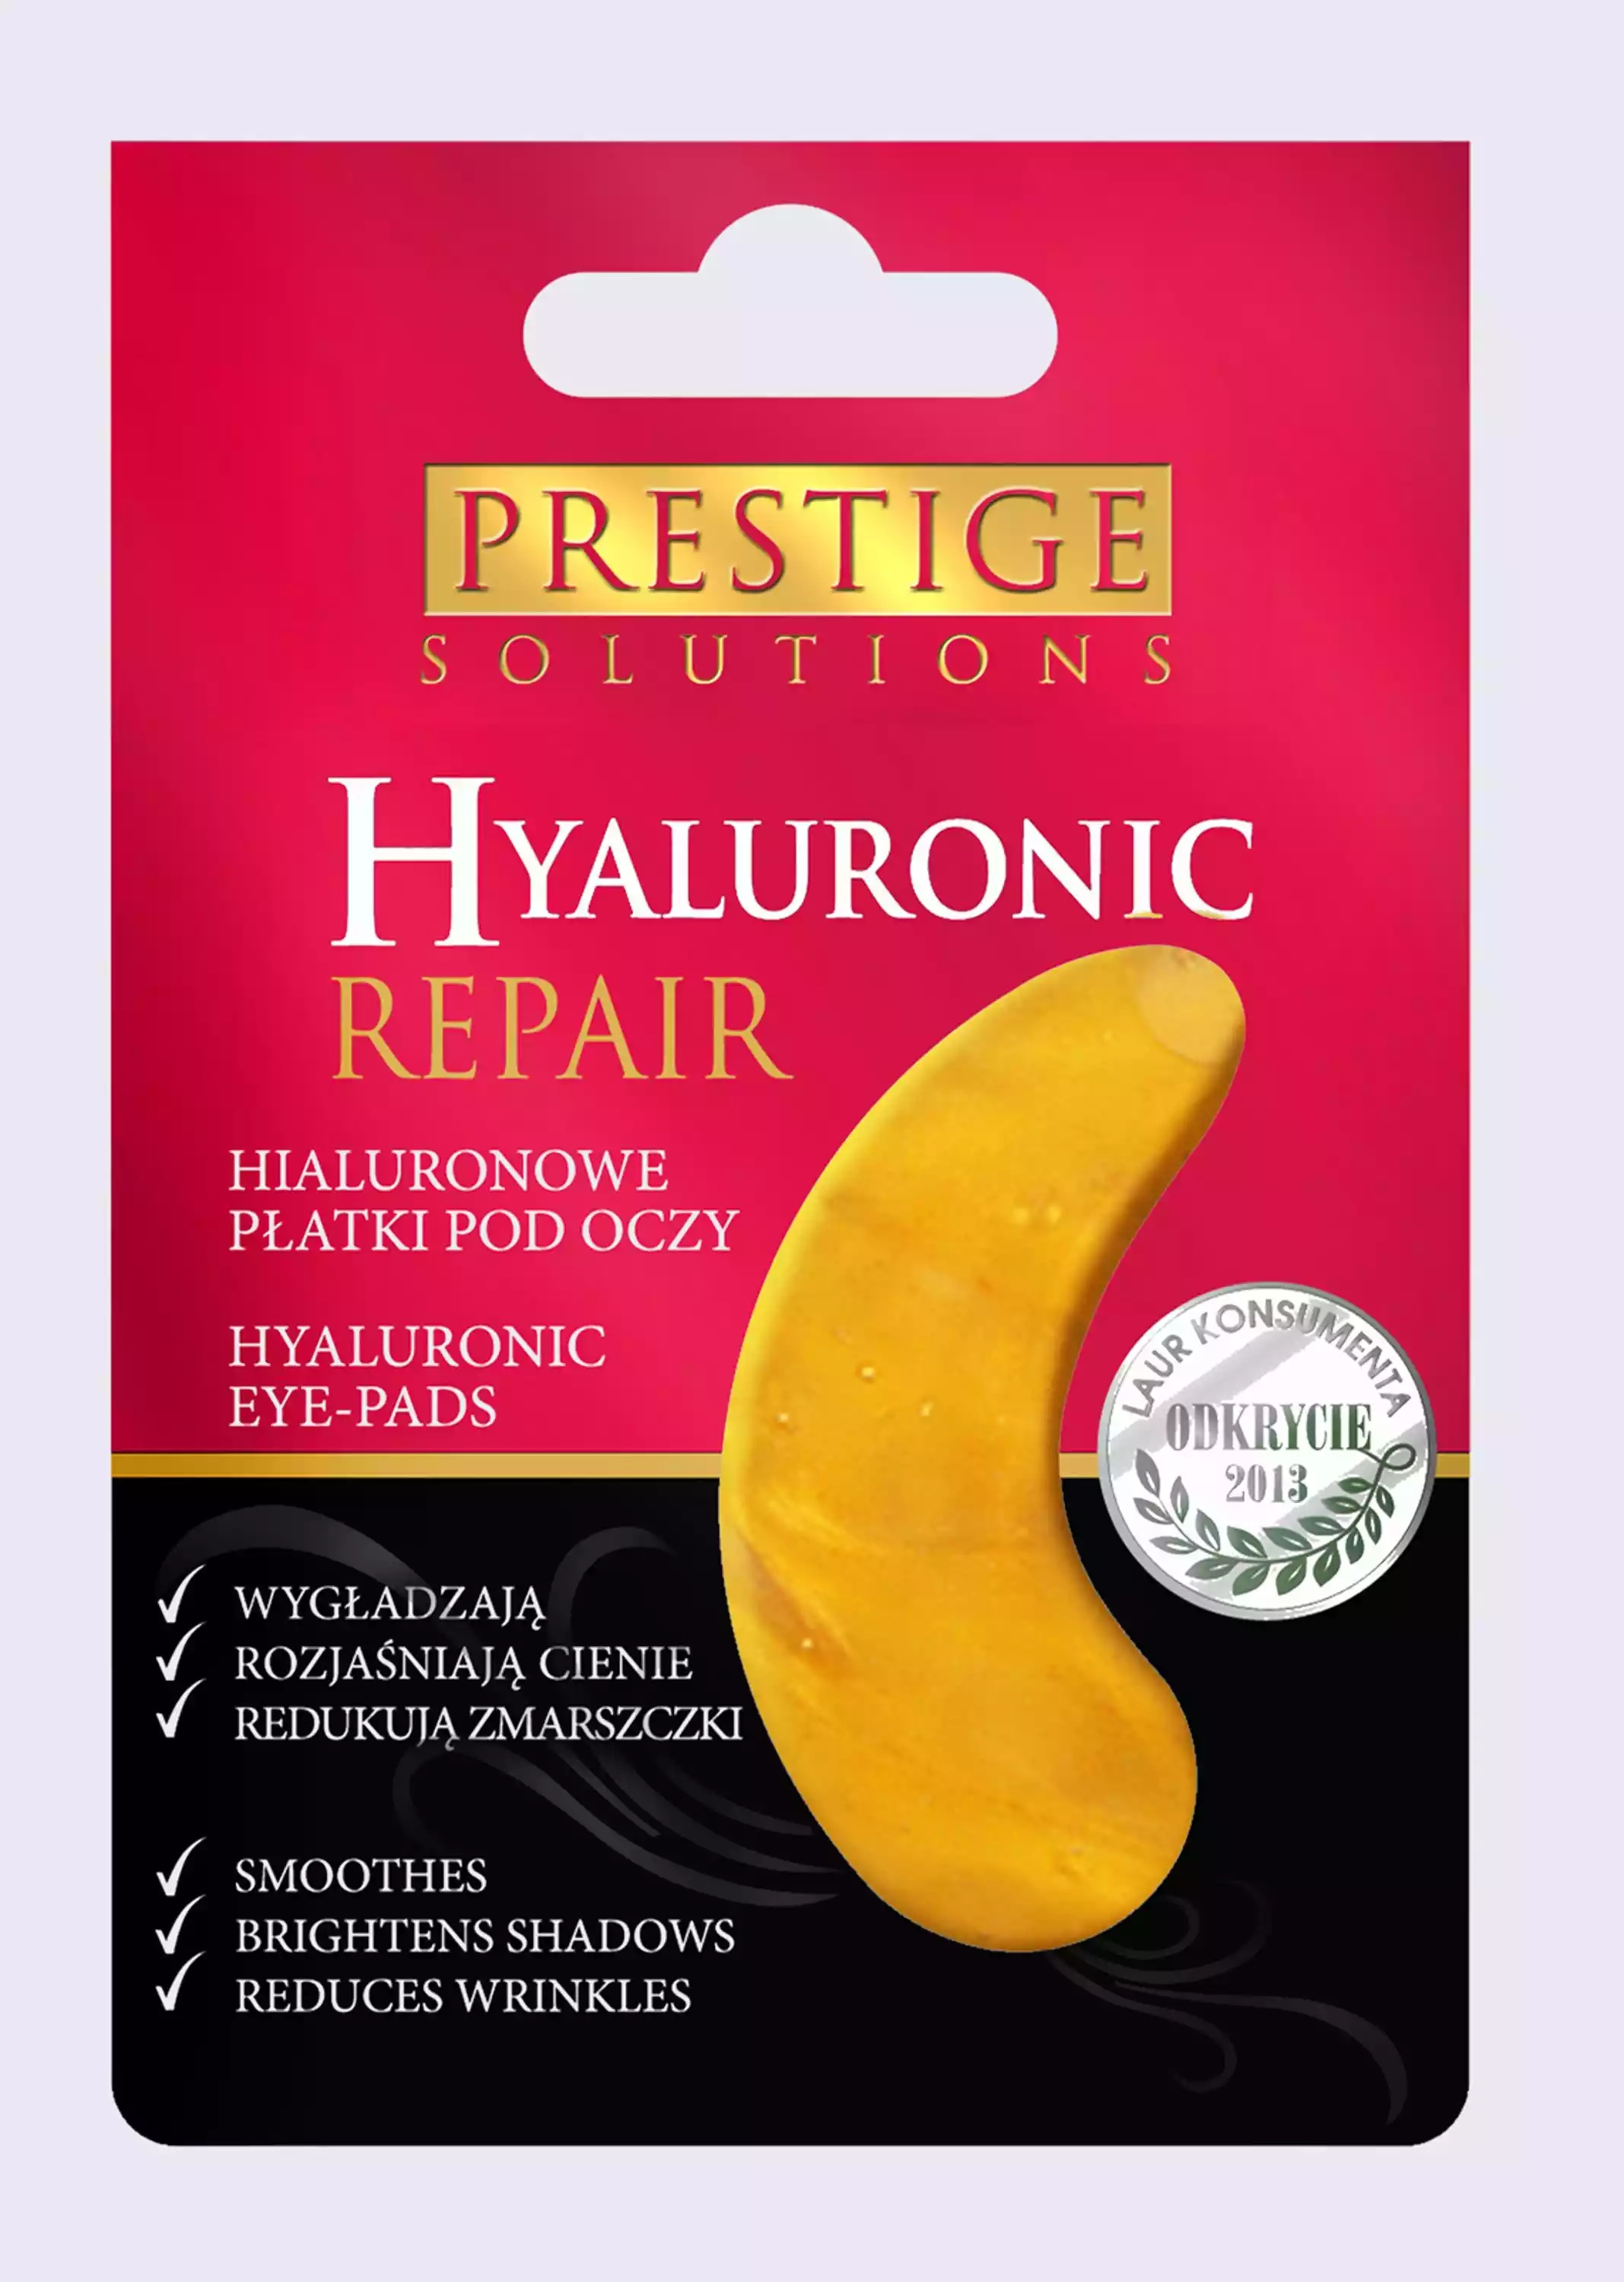 Prestige Solutions Hyaluronic Repair Eye Pads